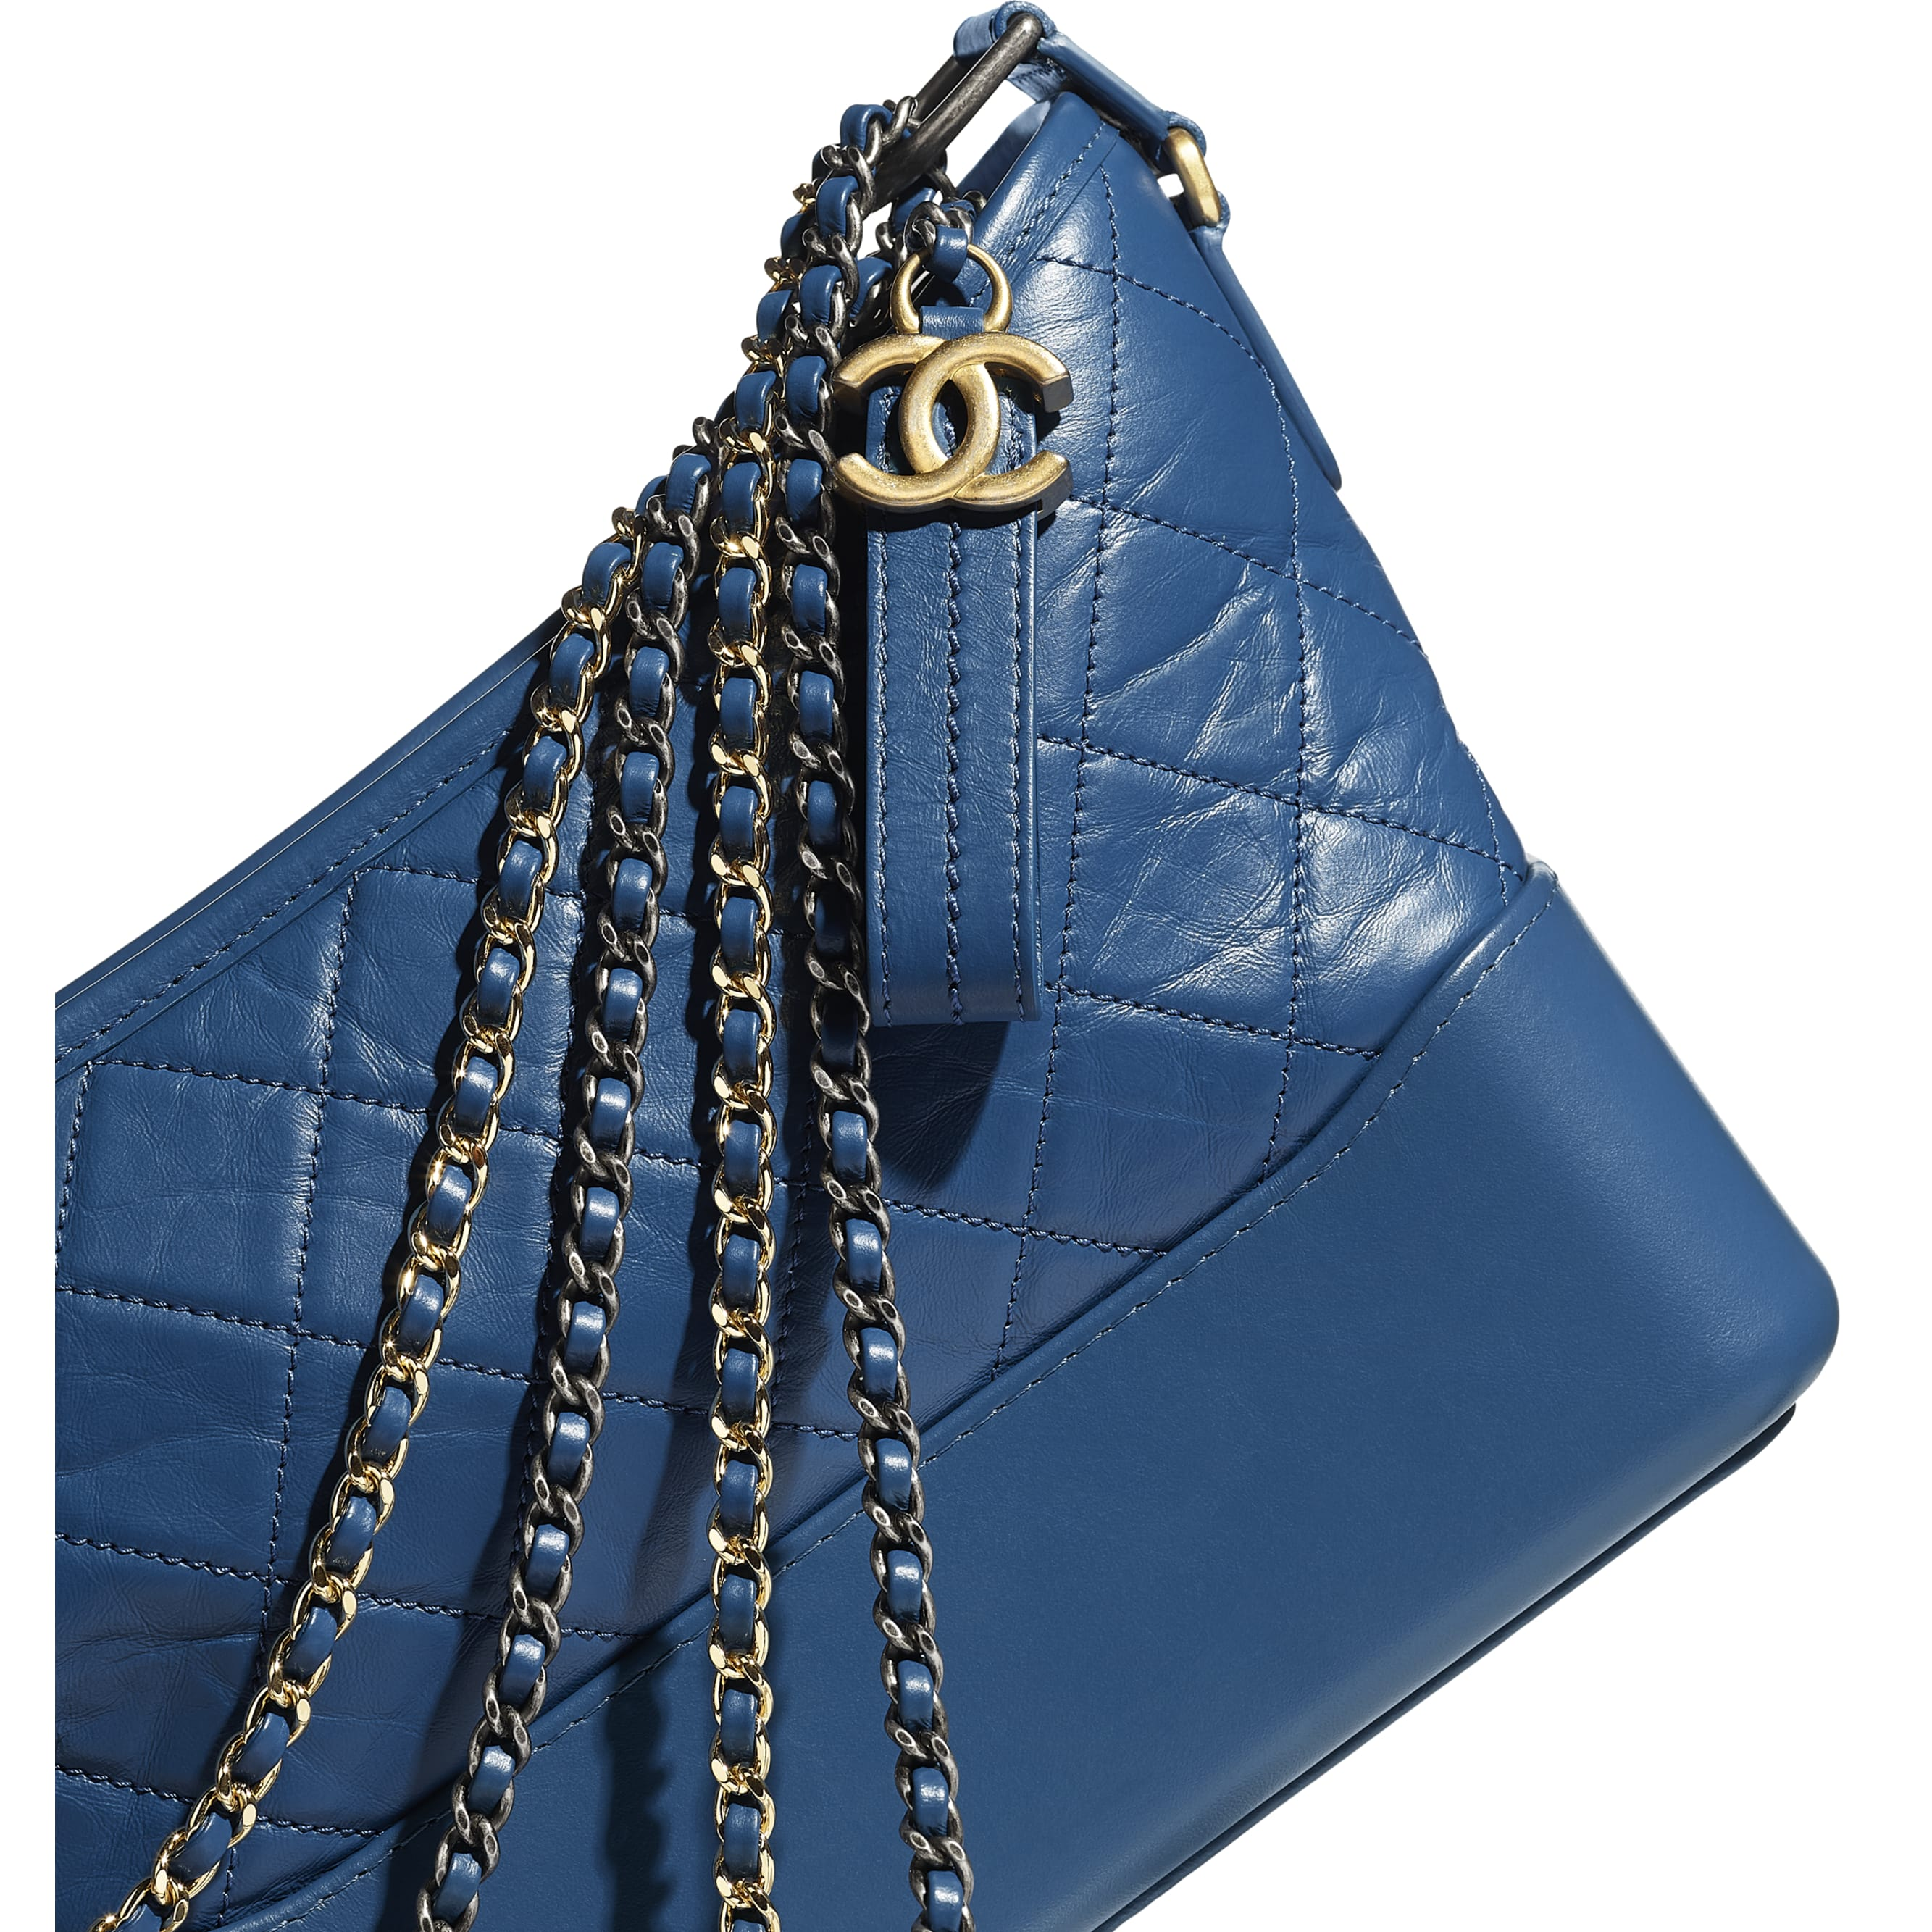 CHANEL'S GABRIELLE Hobo Handbag - Dark Blue - Aged Calfskin, Smooth Calfskin, Gold-Tone, Silver-Tone & Ruthenium-Finish Metal - CHANEL - Extra view - see standard sized version